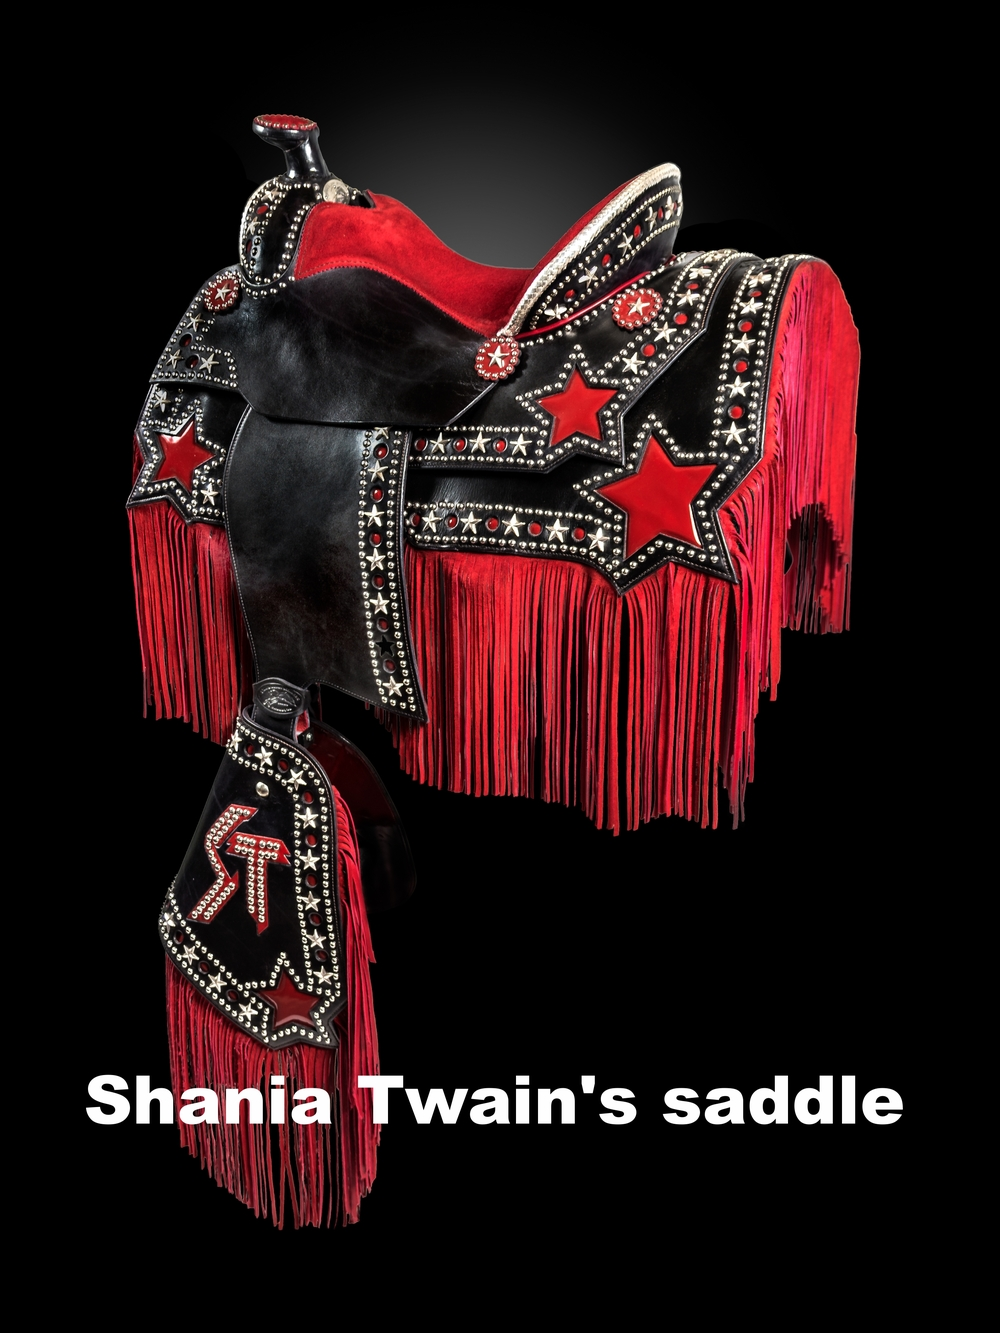 Shania Twain's farewell tour saddle